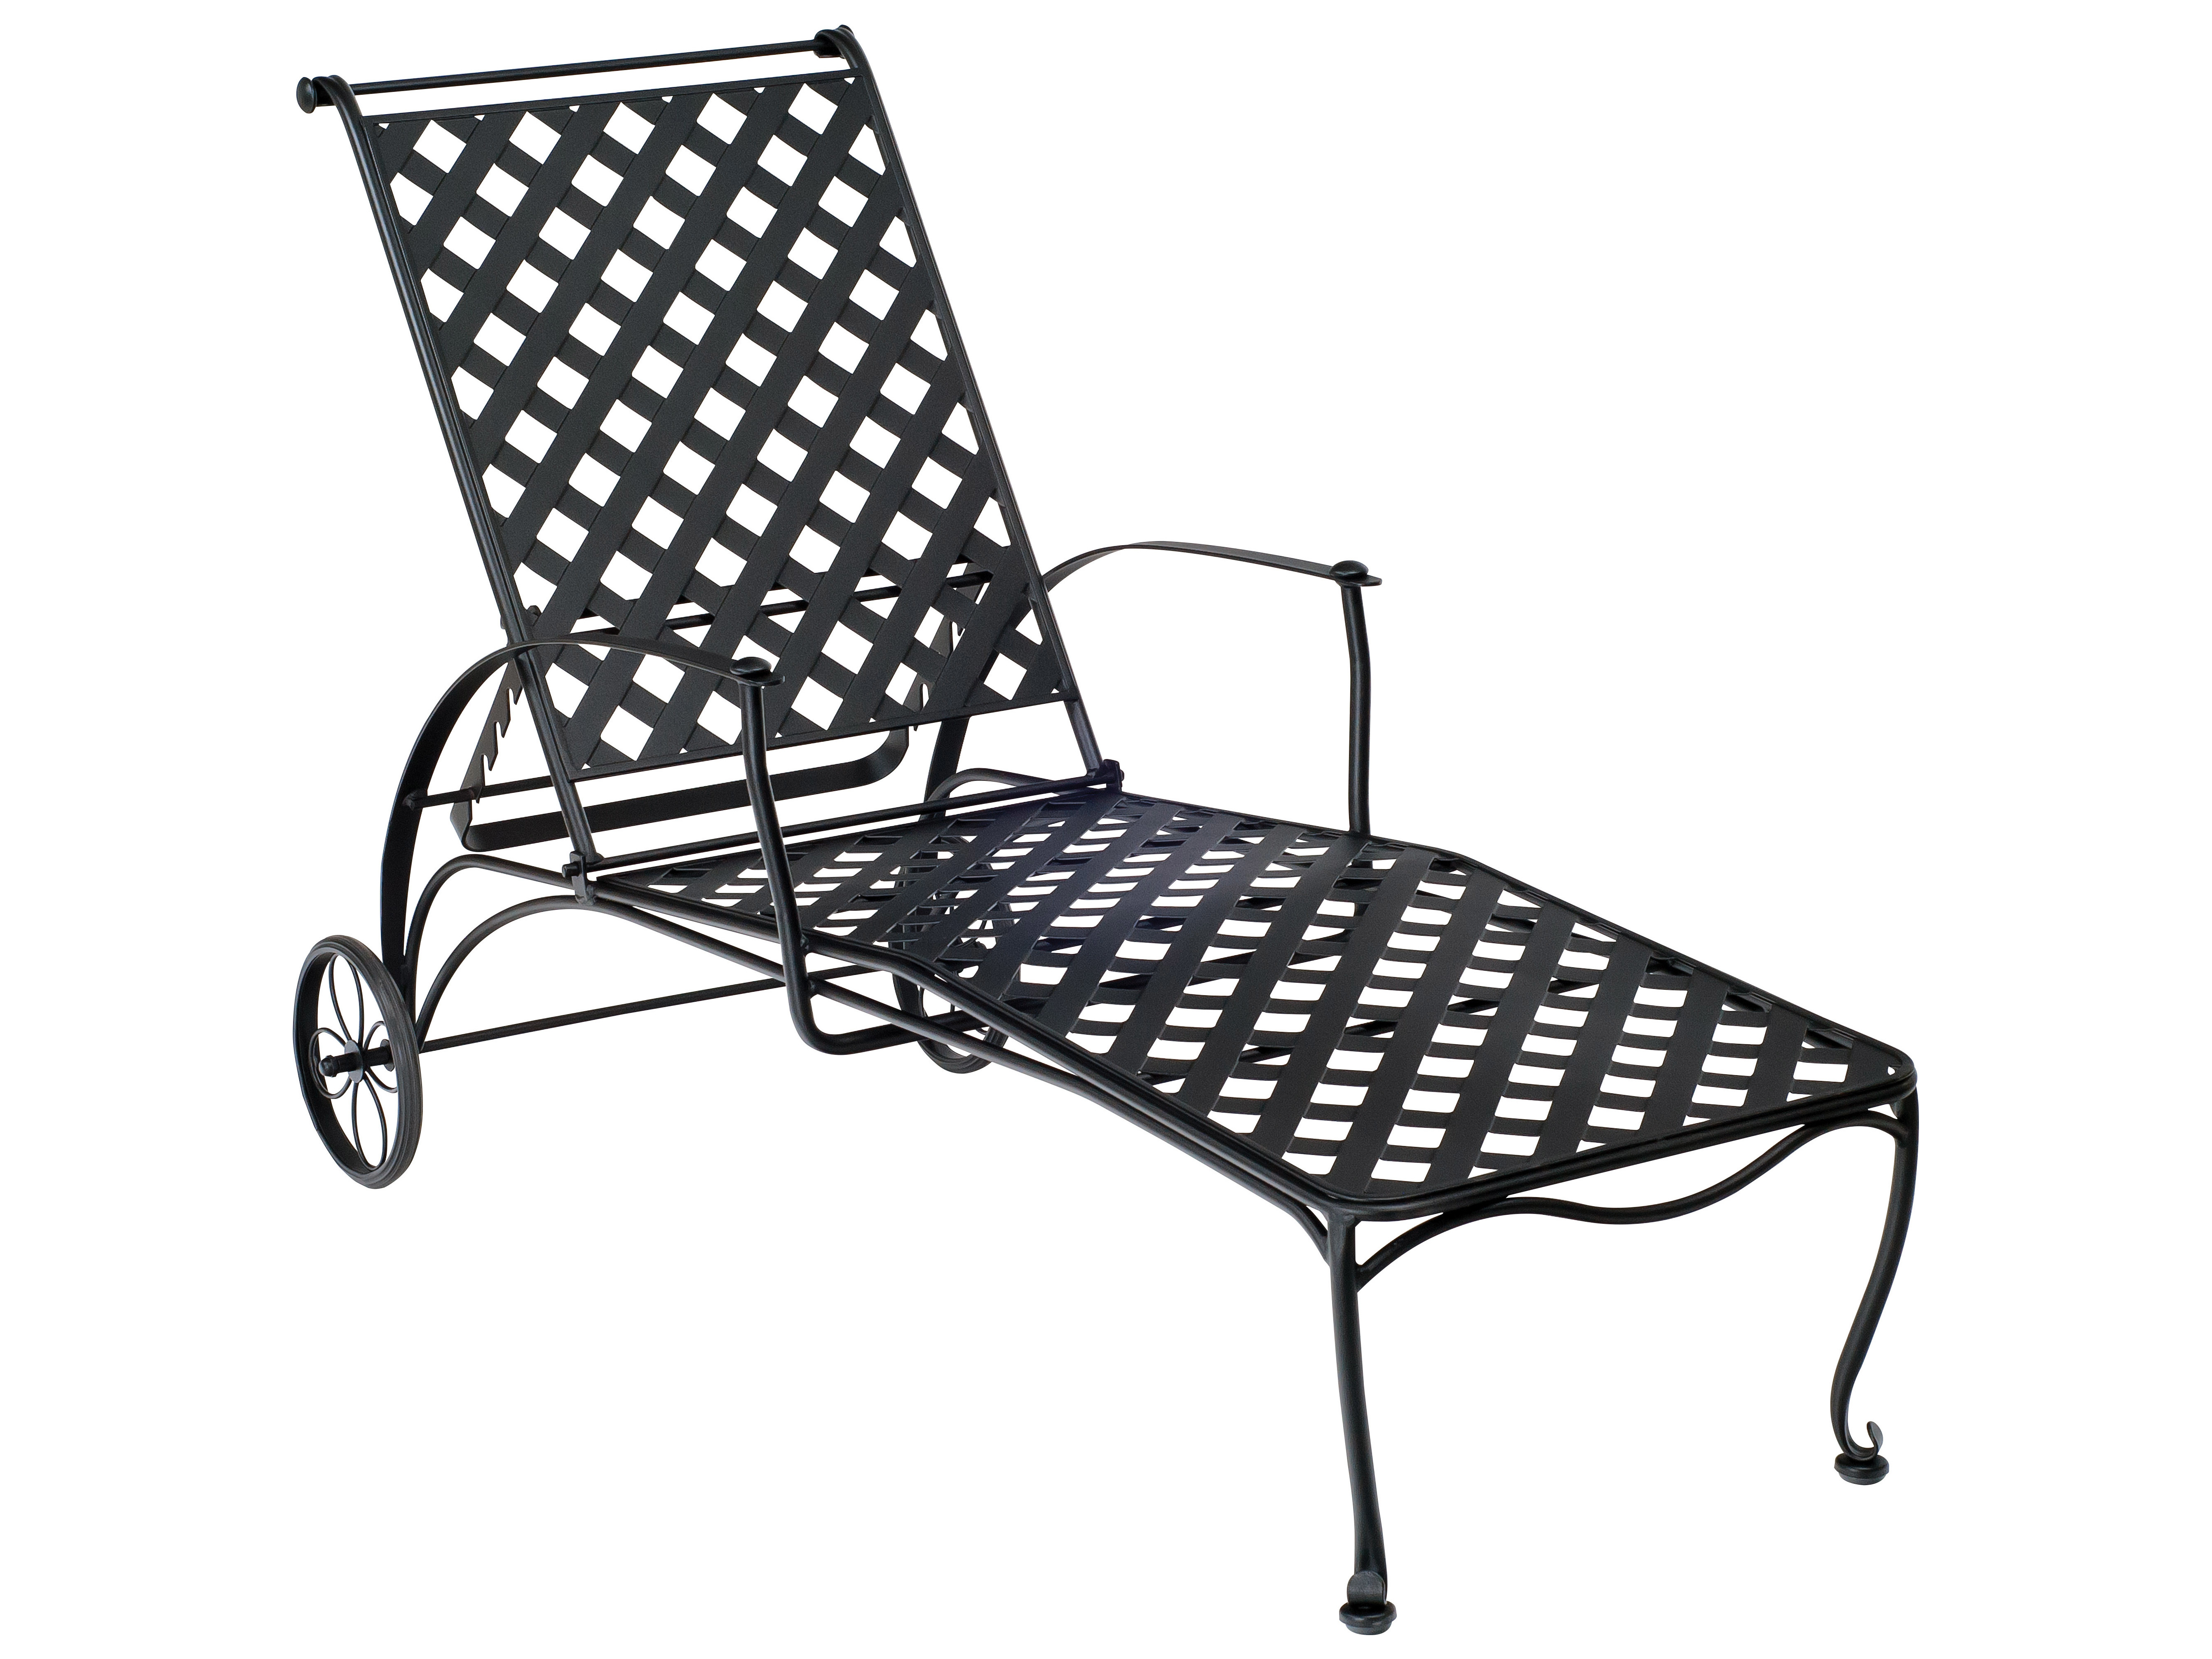 Woodard Maddox Adjustable Chaise Lounge Replacement